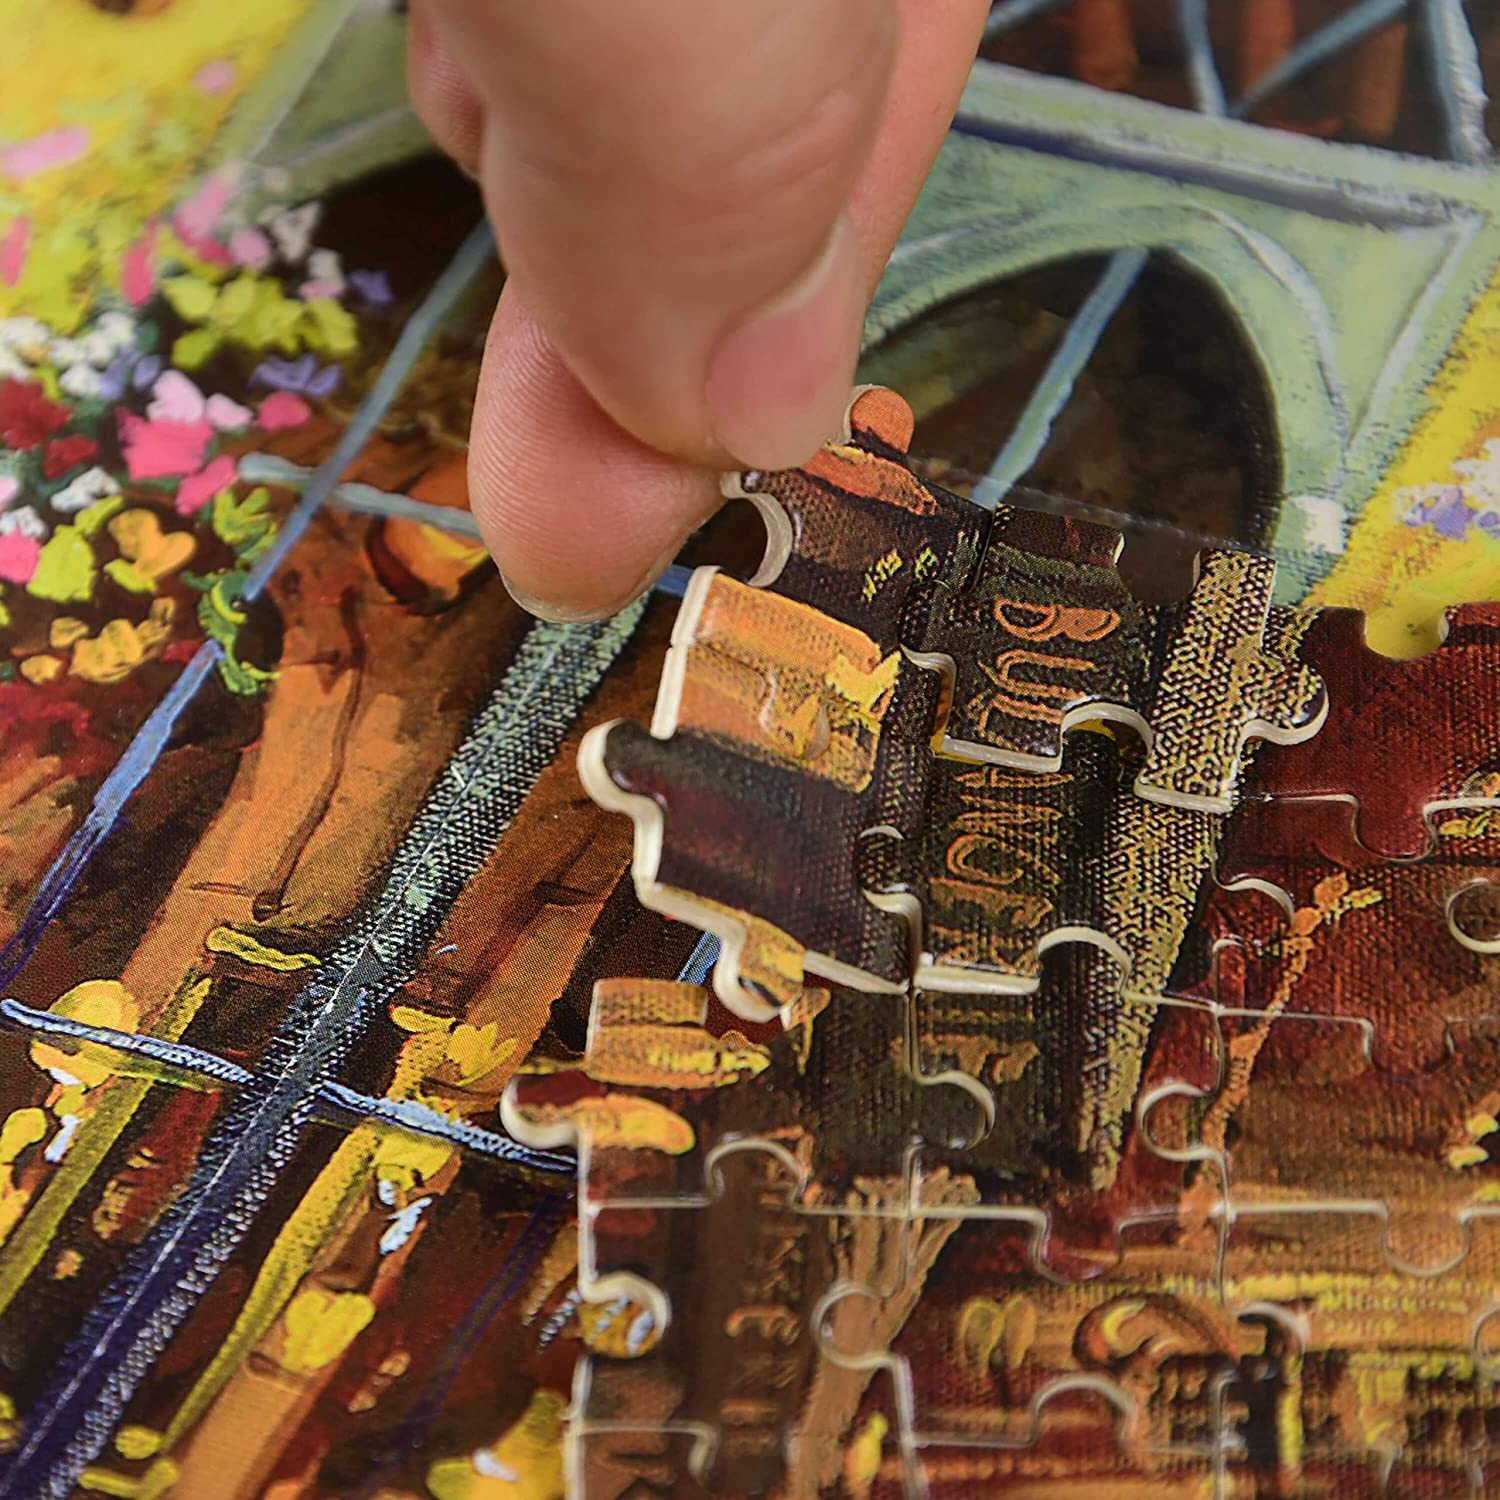 for Adults Every Piece is Unique Wooden Jigsaw Puzzle,1000 Piece Oil Painting Architecture Pieces Fit Together Perfectly